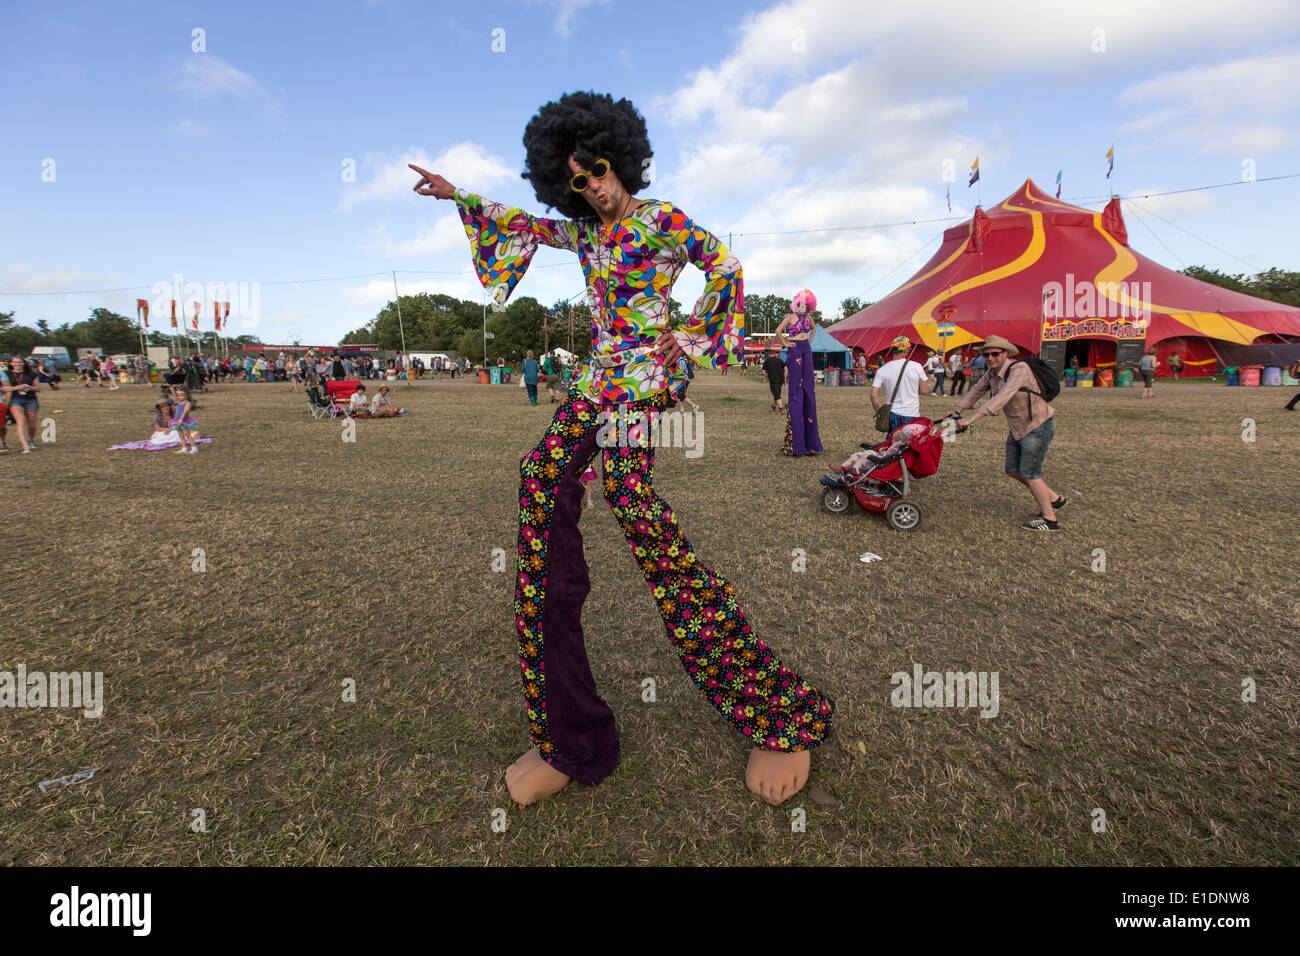 Man with a  70's  psychedelic dress in  Glastonbury Festival 2013 - Stock Image